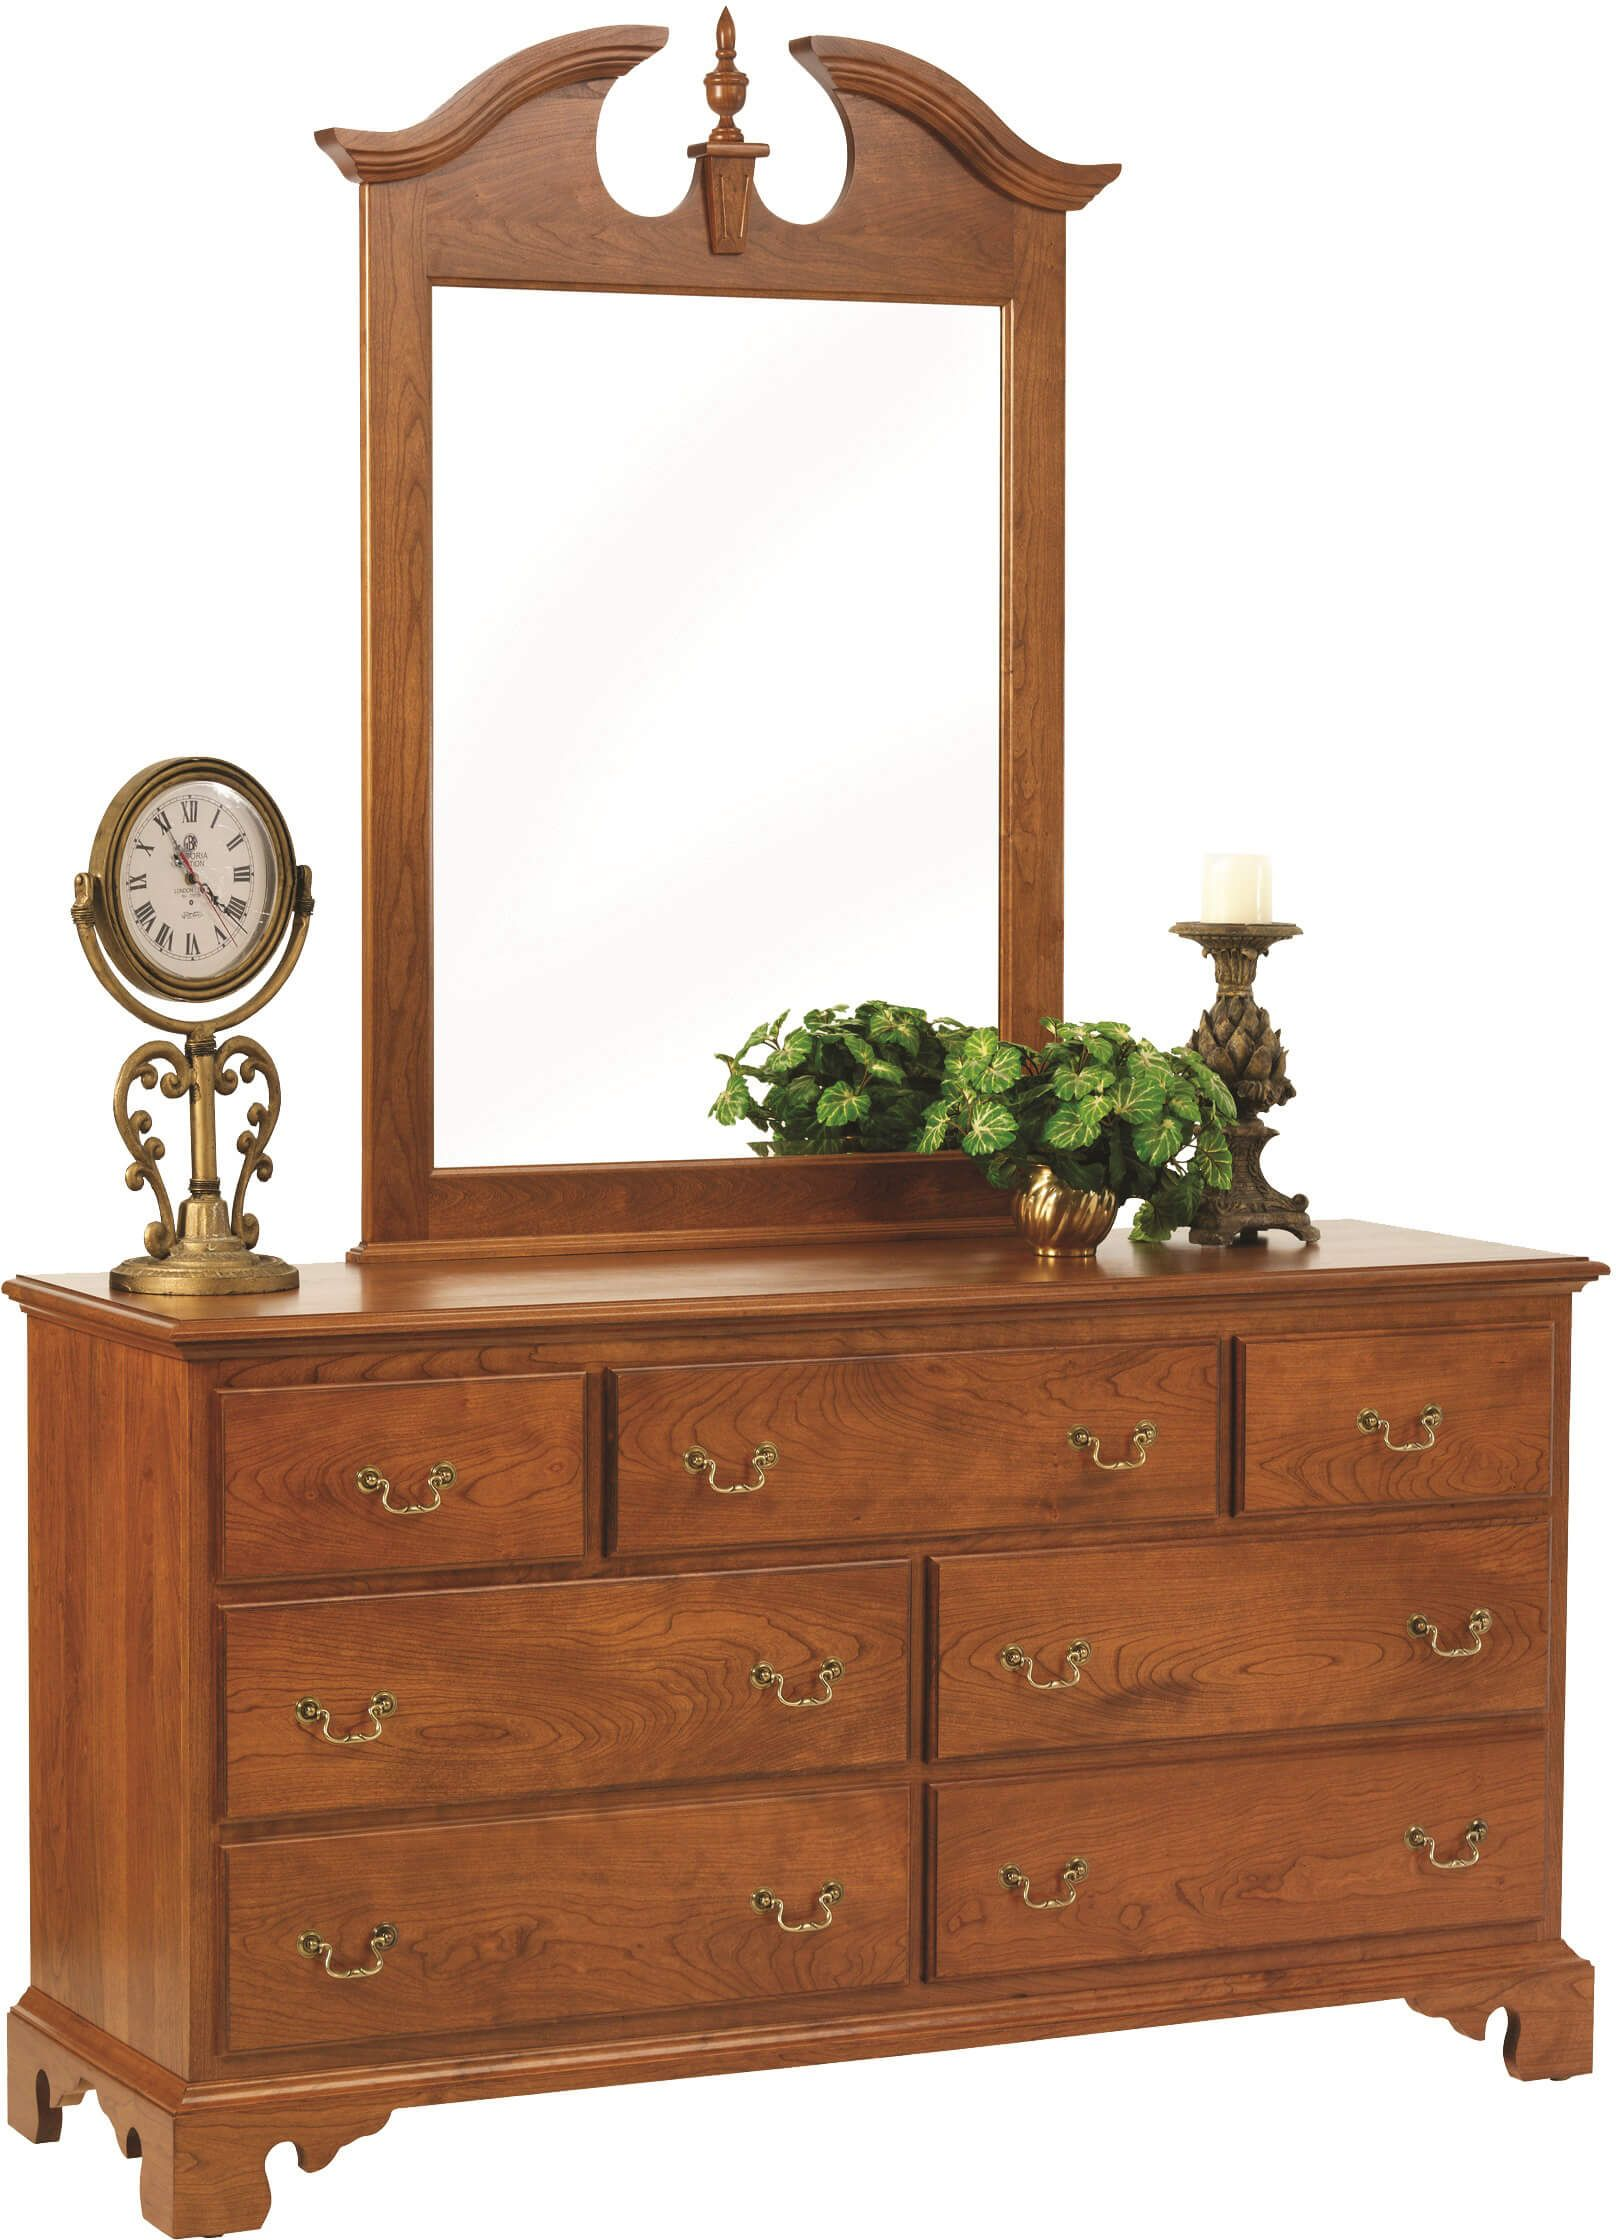 Fairmount Heights Dresser with Mirror in Cherry